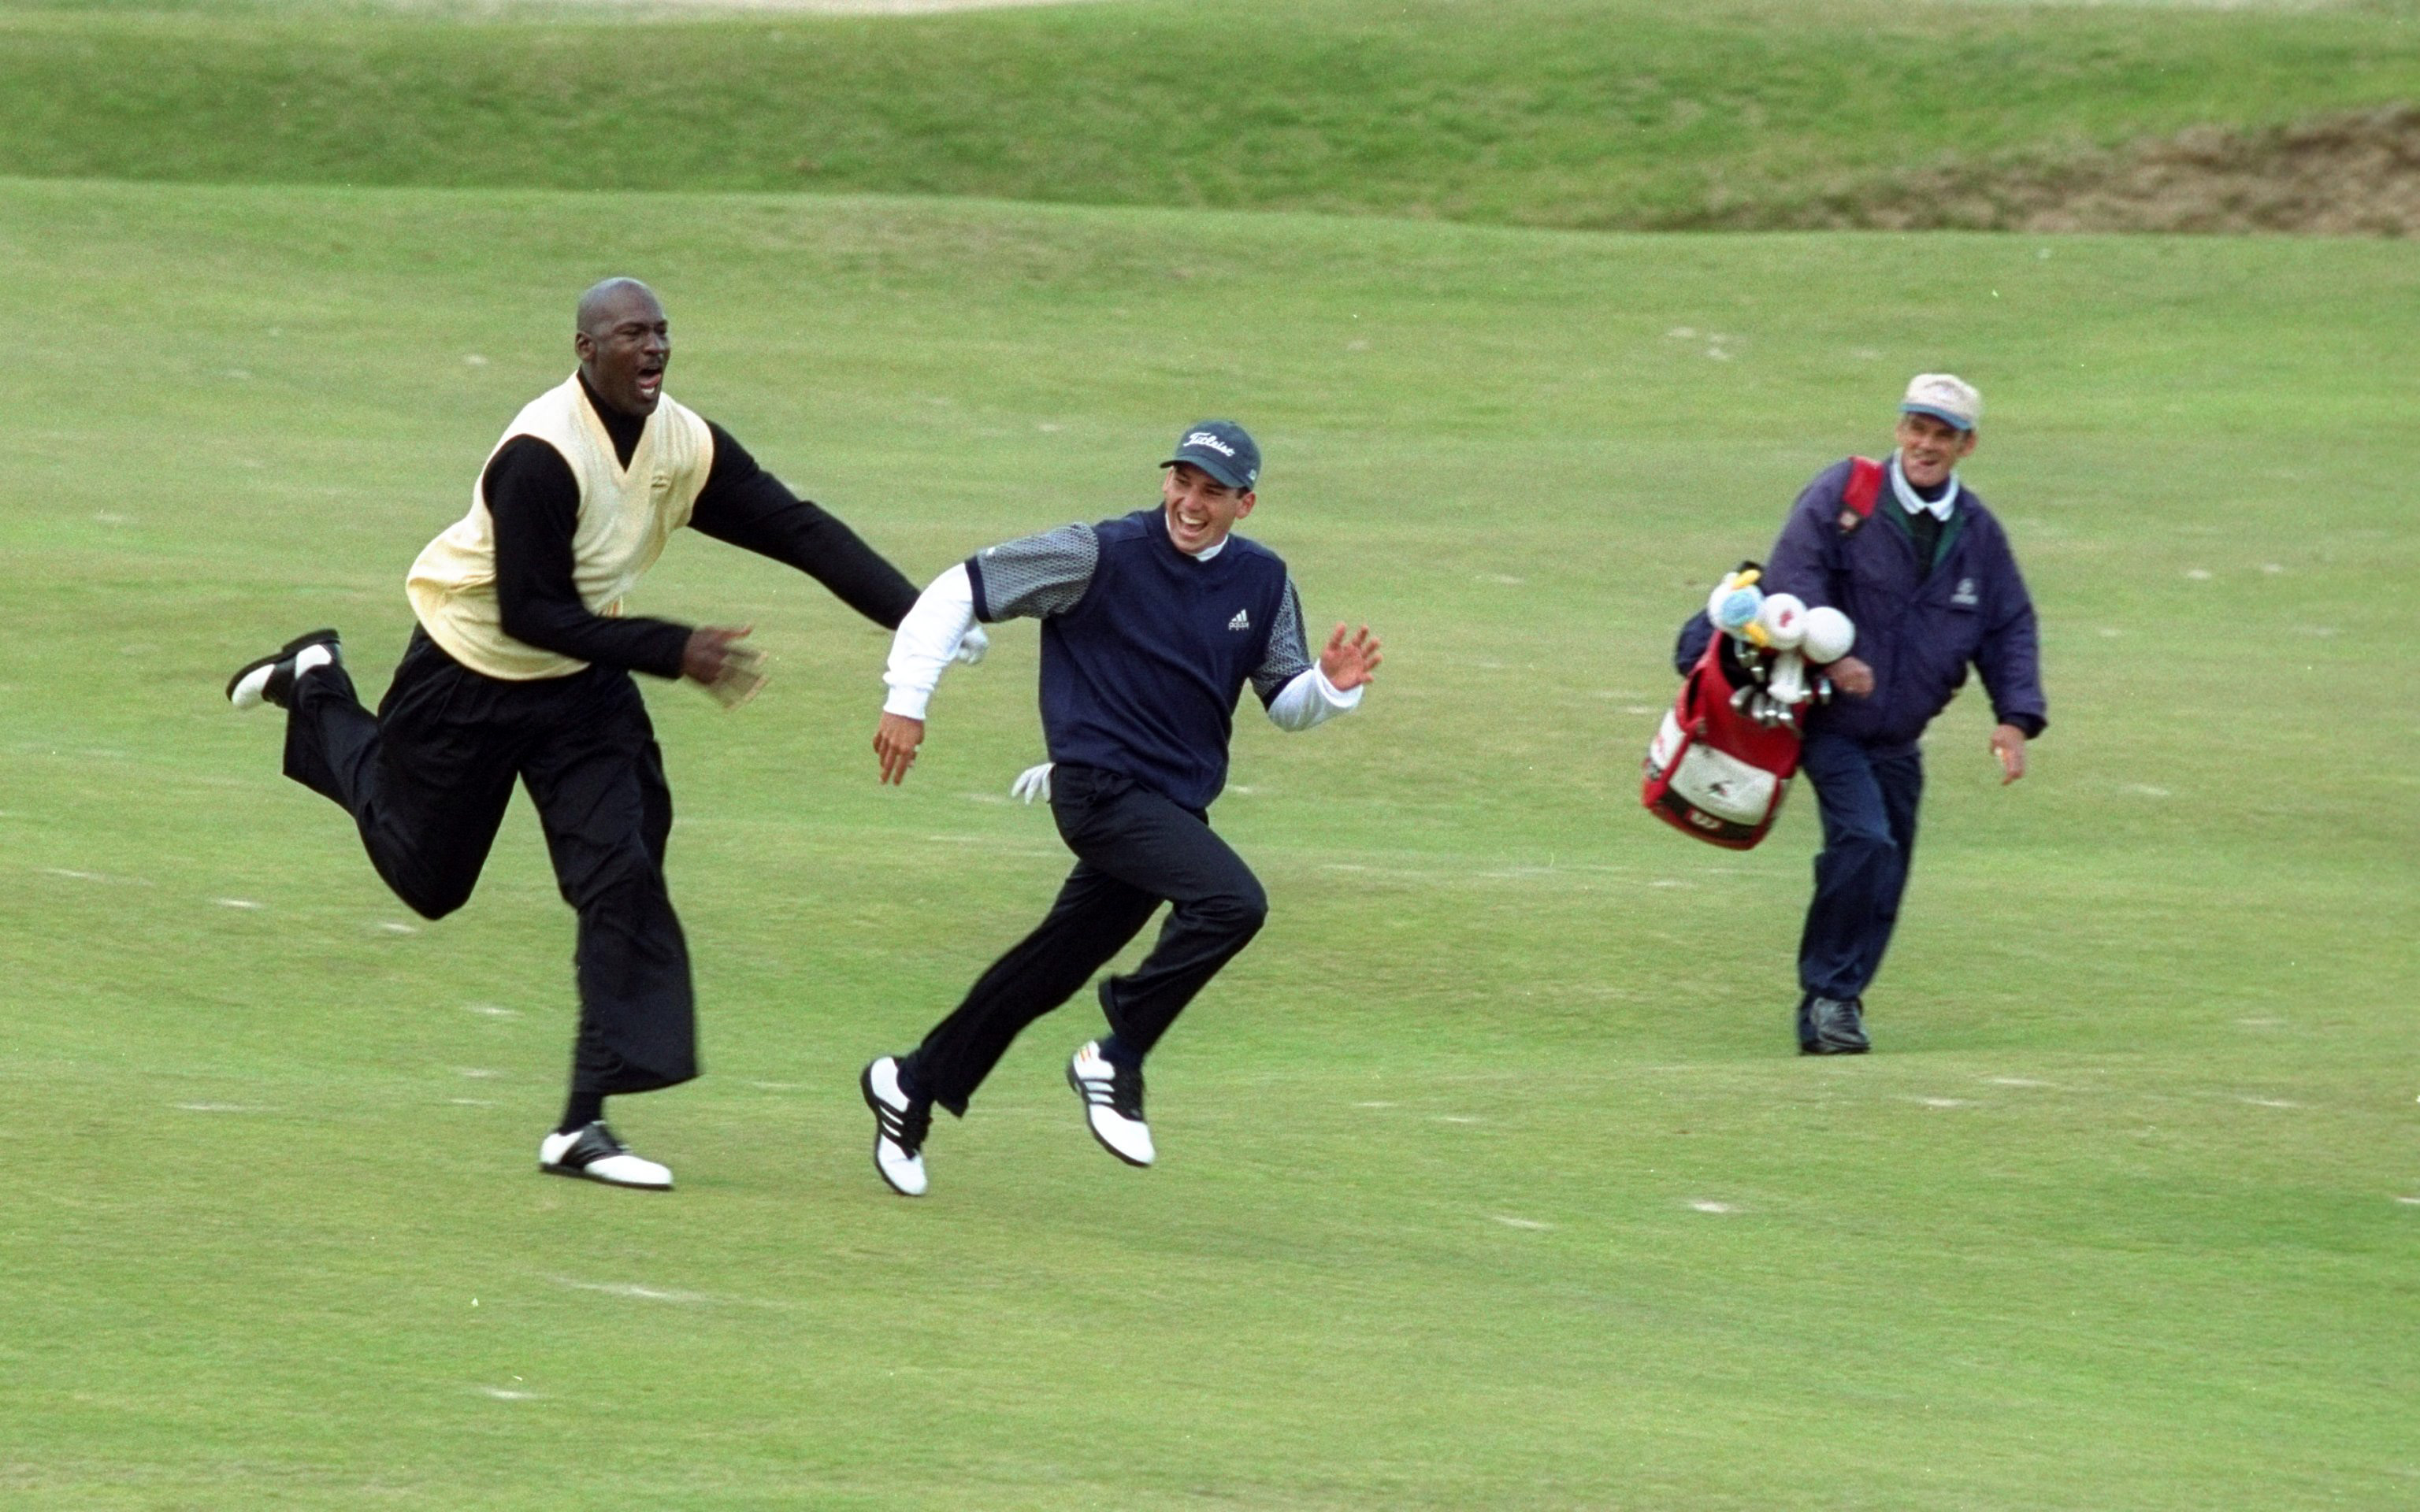 Michael Jordan is so fed up at his country club that he may build his own golf course